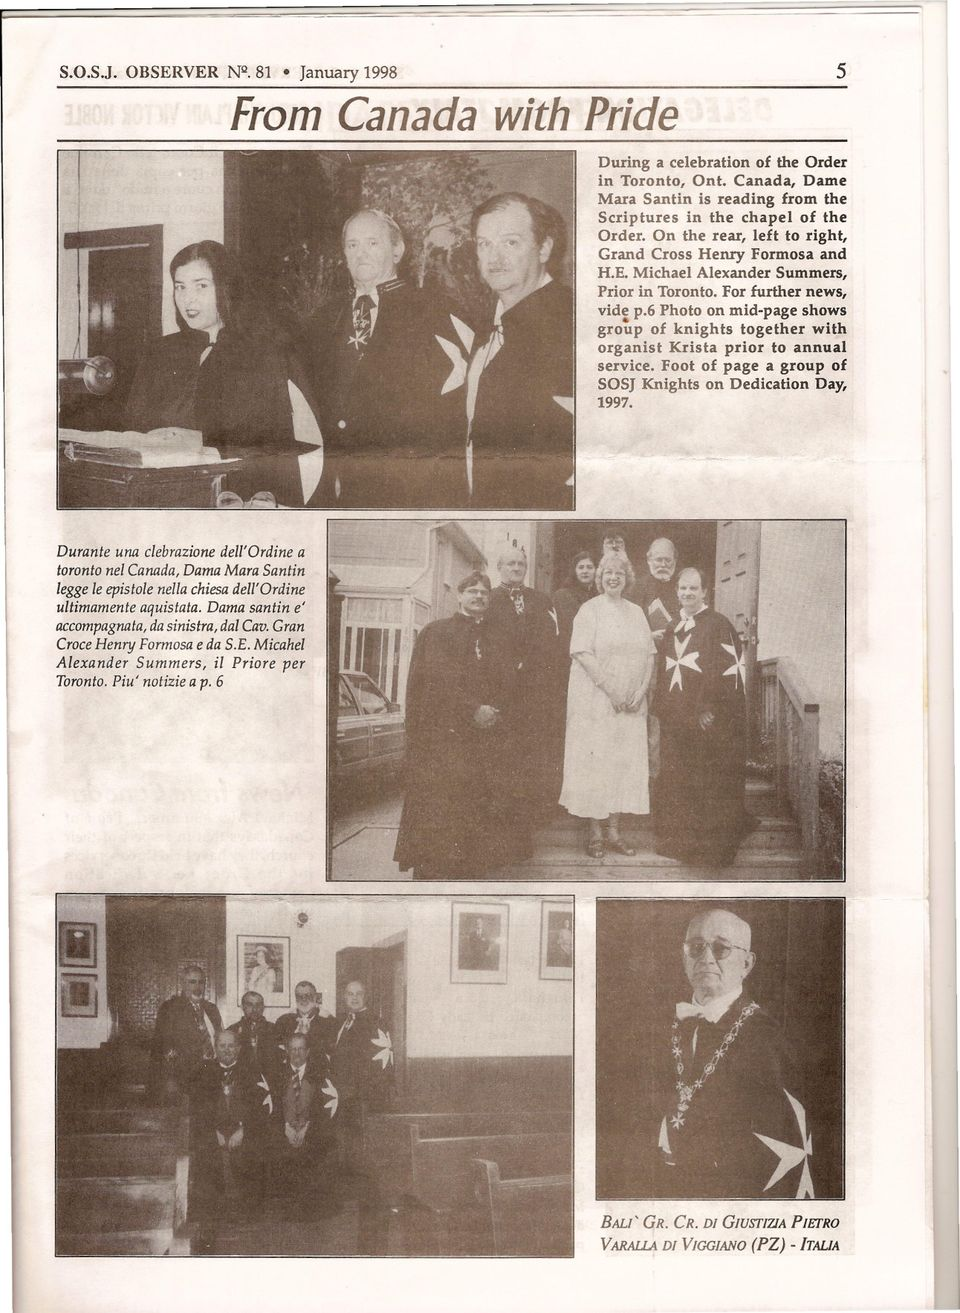 6 Photo on mid-page shows grotp of knights together with organist Krista prior to annual service. Foot of page a group of SOSJ Knights on Dedication Day, 1997.